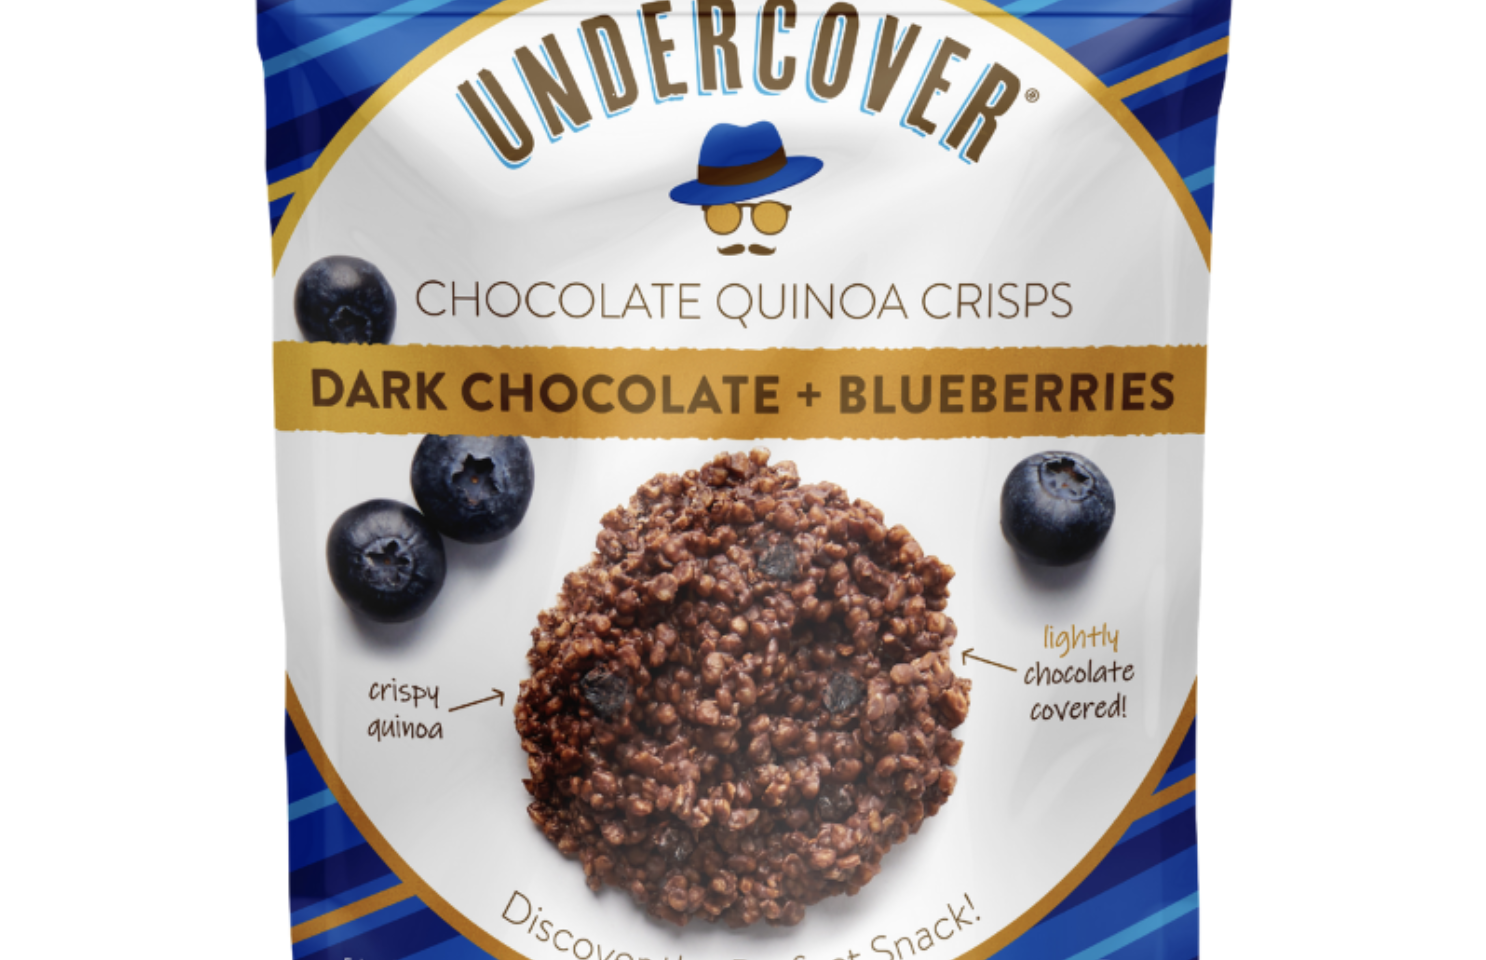 REVIEW: Undercover Snacks